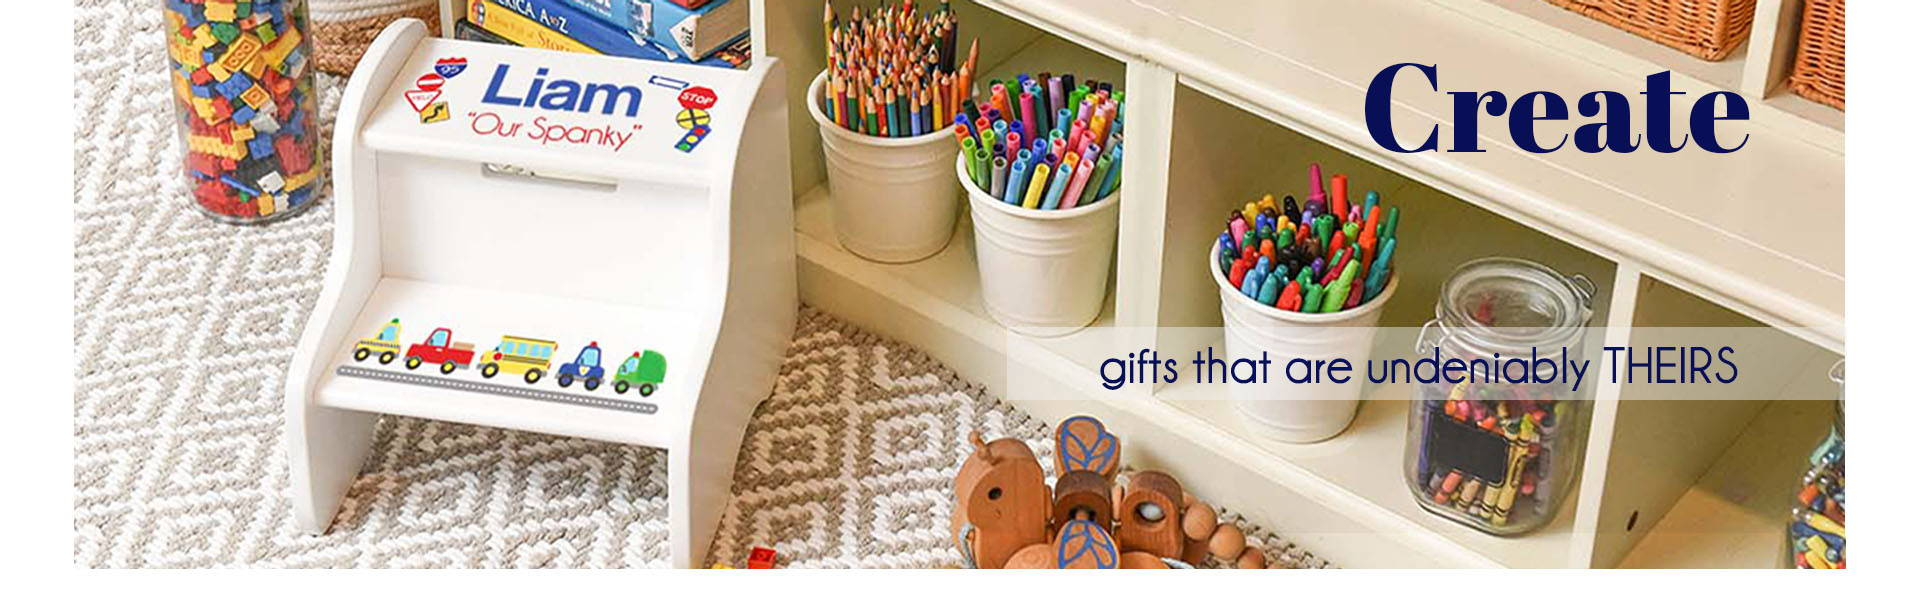 Create gifts that are undeniably THIERS